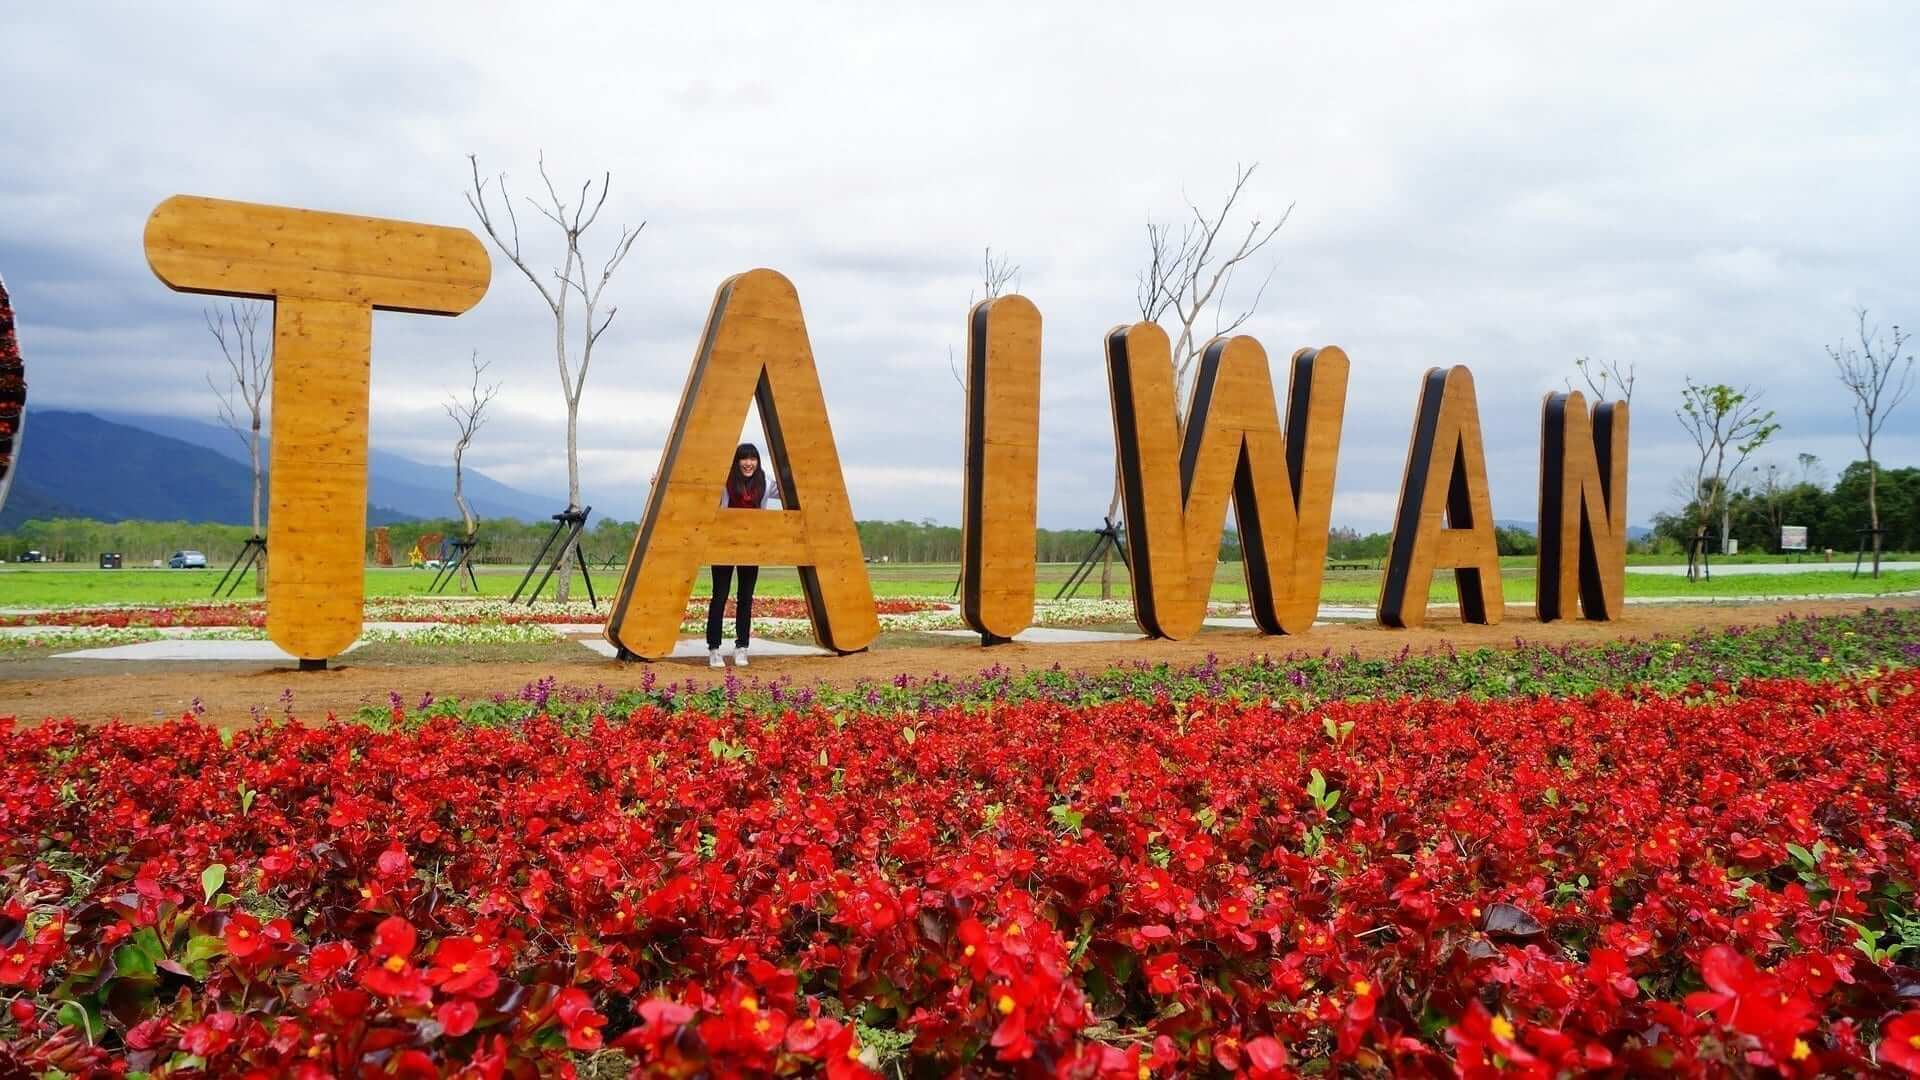 5 Interesting Facts About Taiwan You Might Not Know